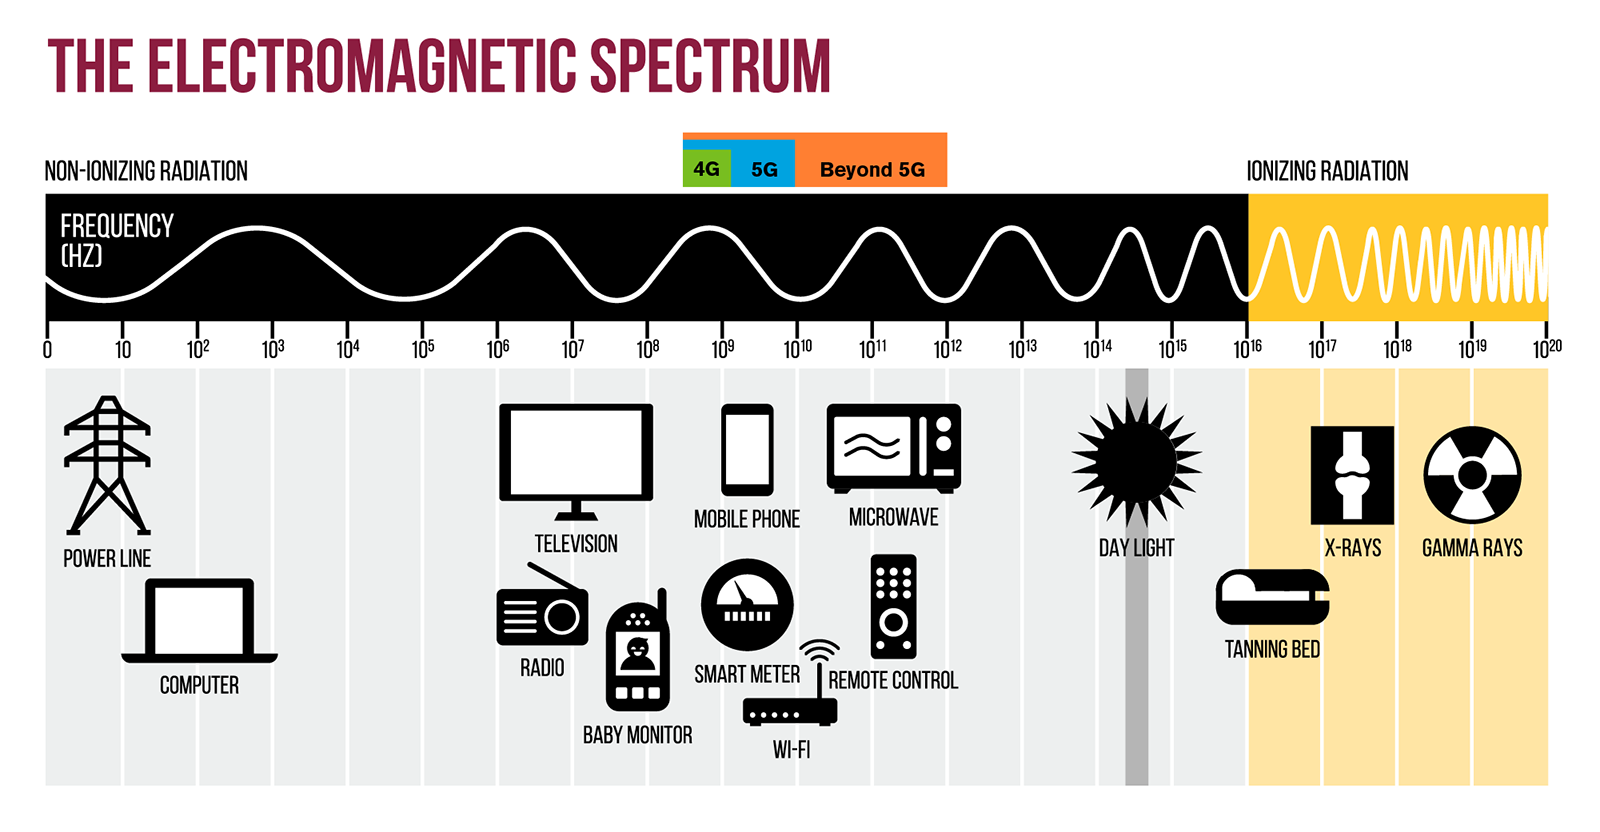 Electromagnetic spectrum diagram showing the frequencies of 4G, 5G and the future beyond 5G.